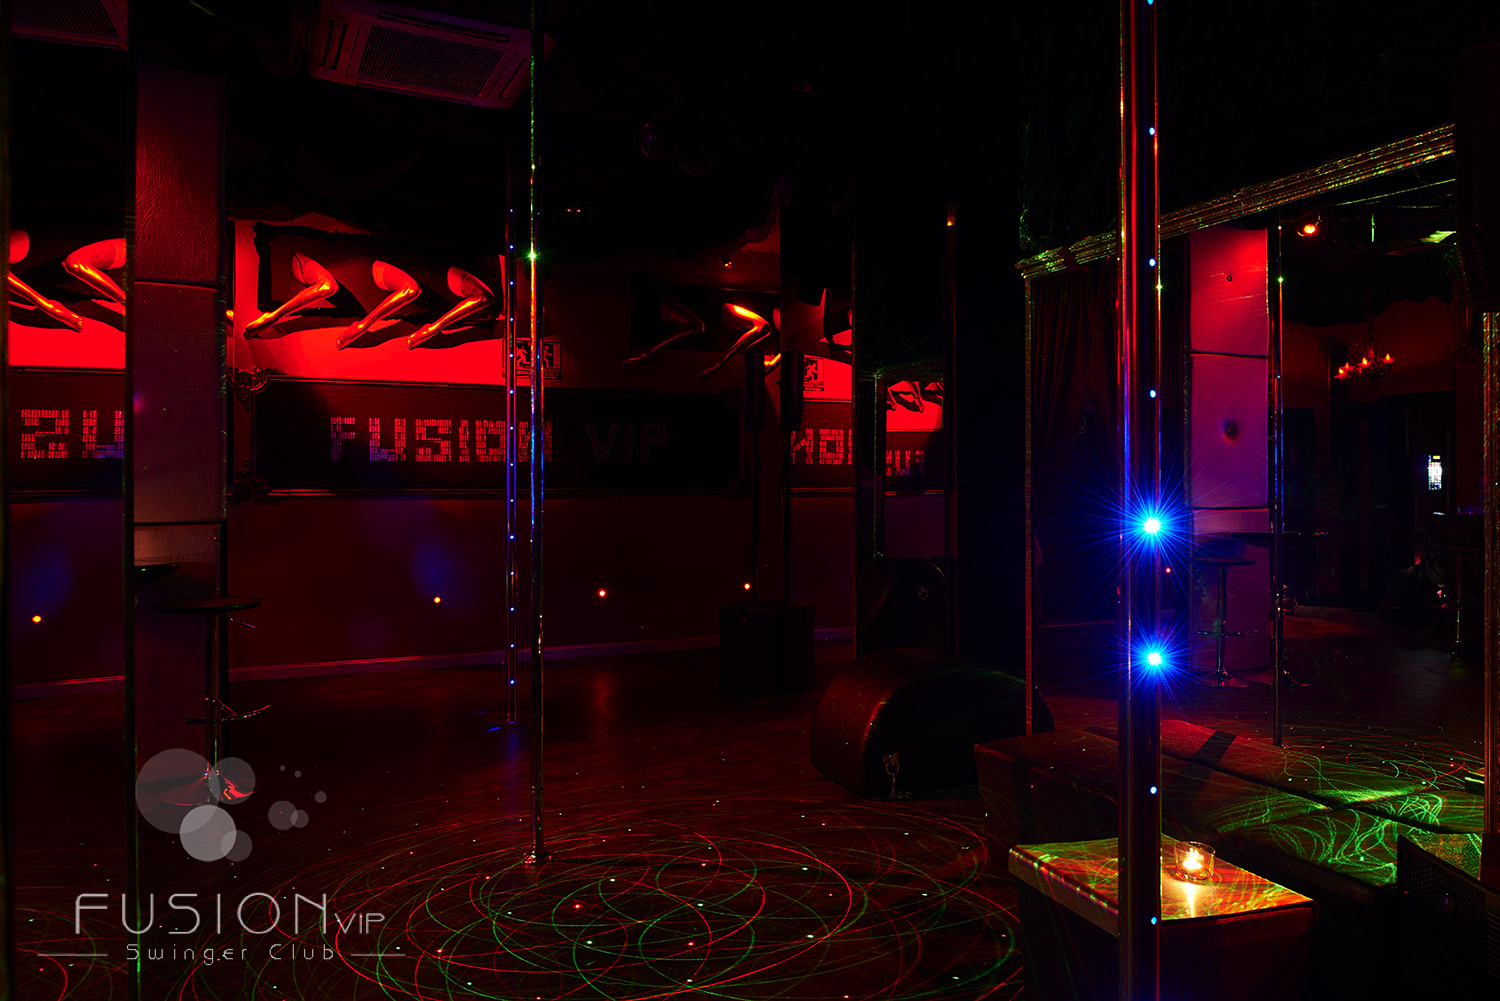 Galeria fusionvip for Club intercambio madrid